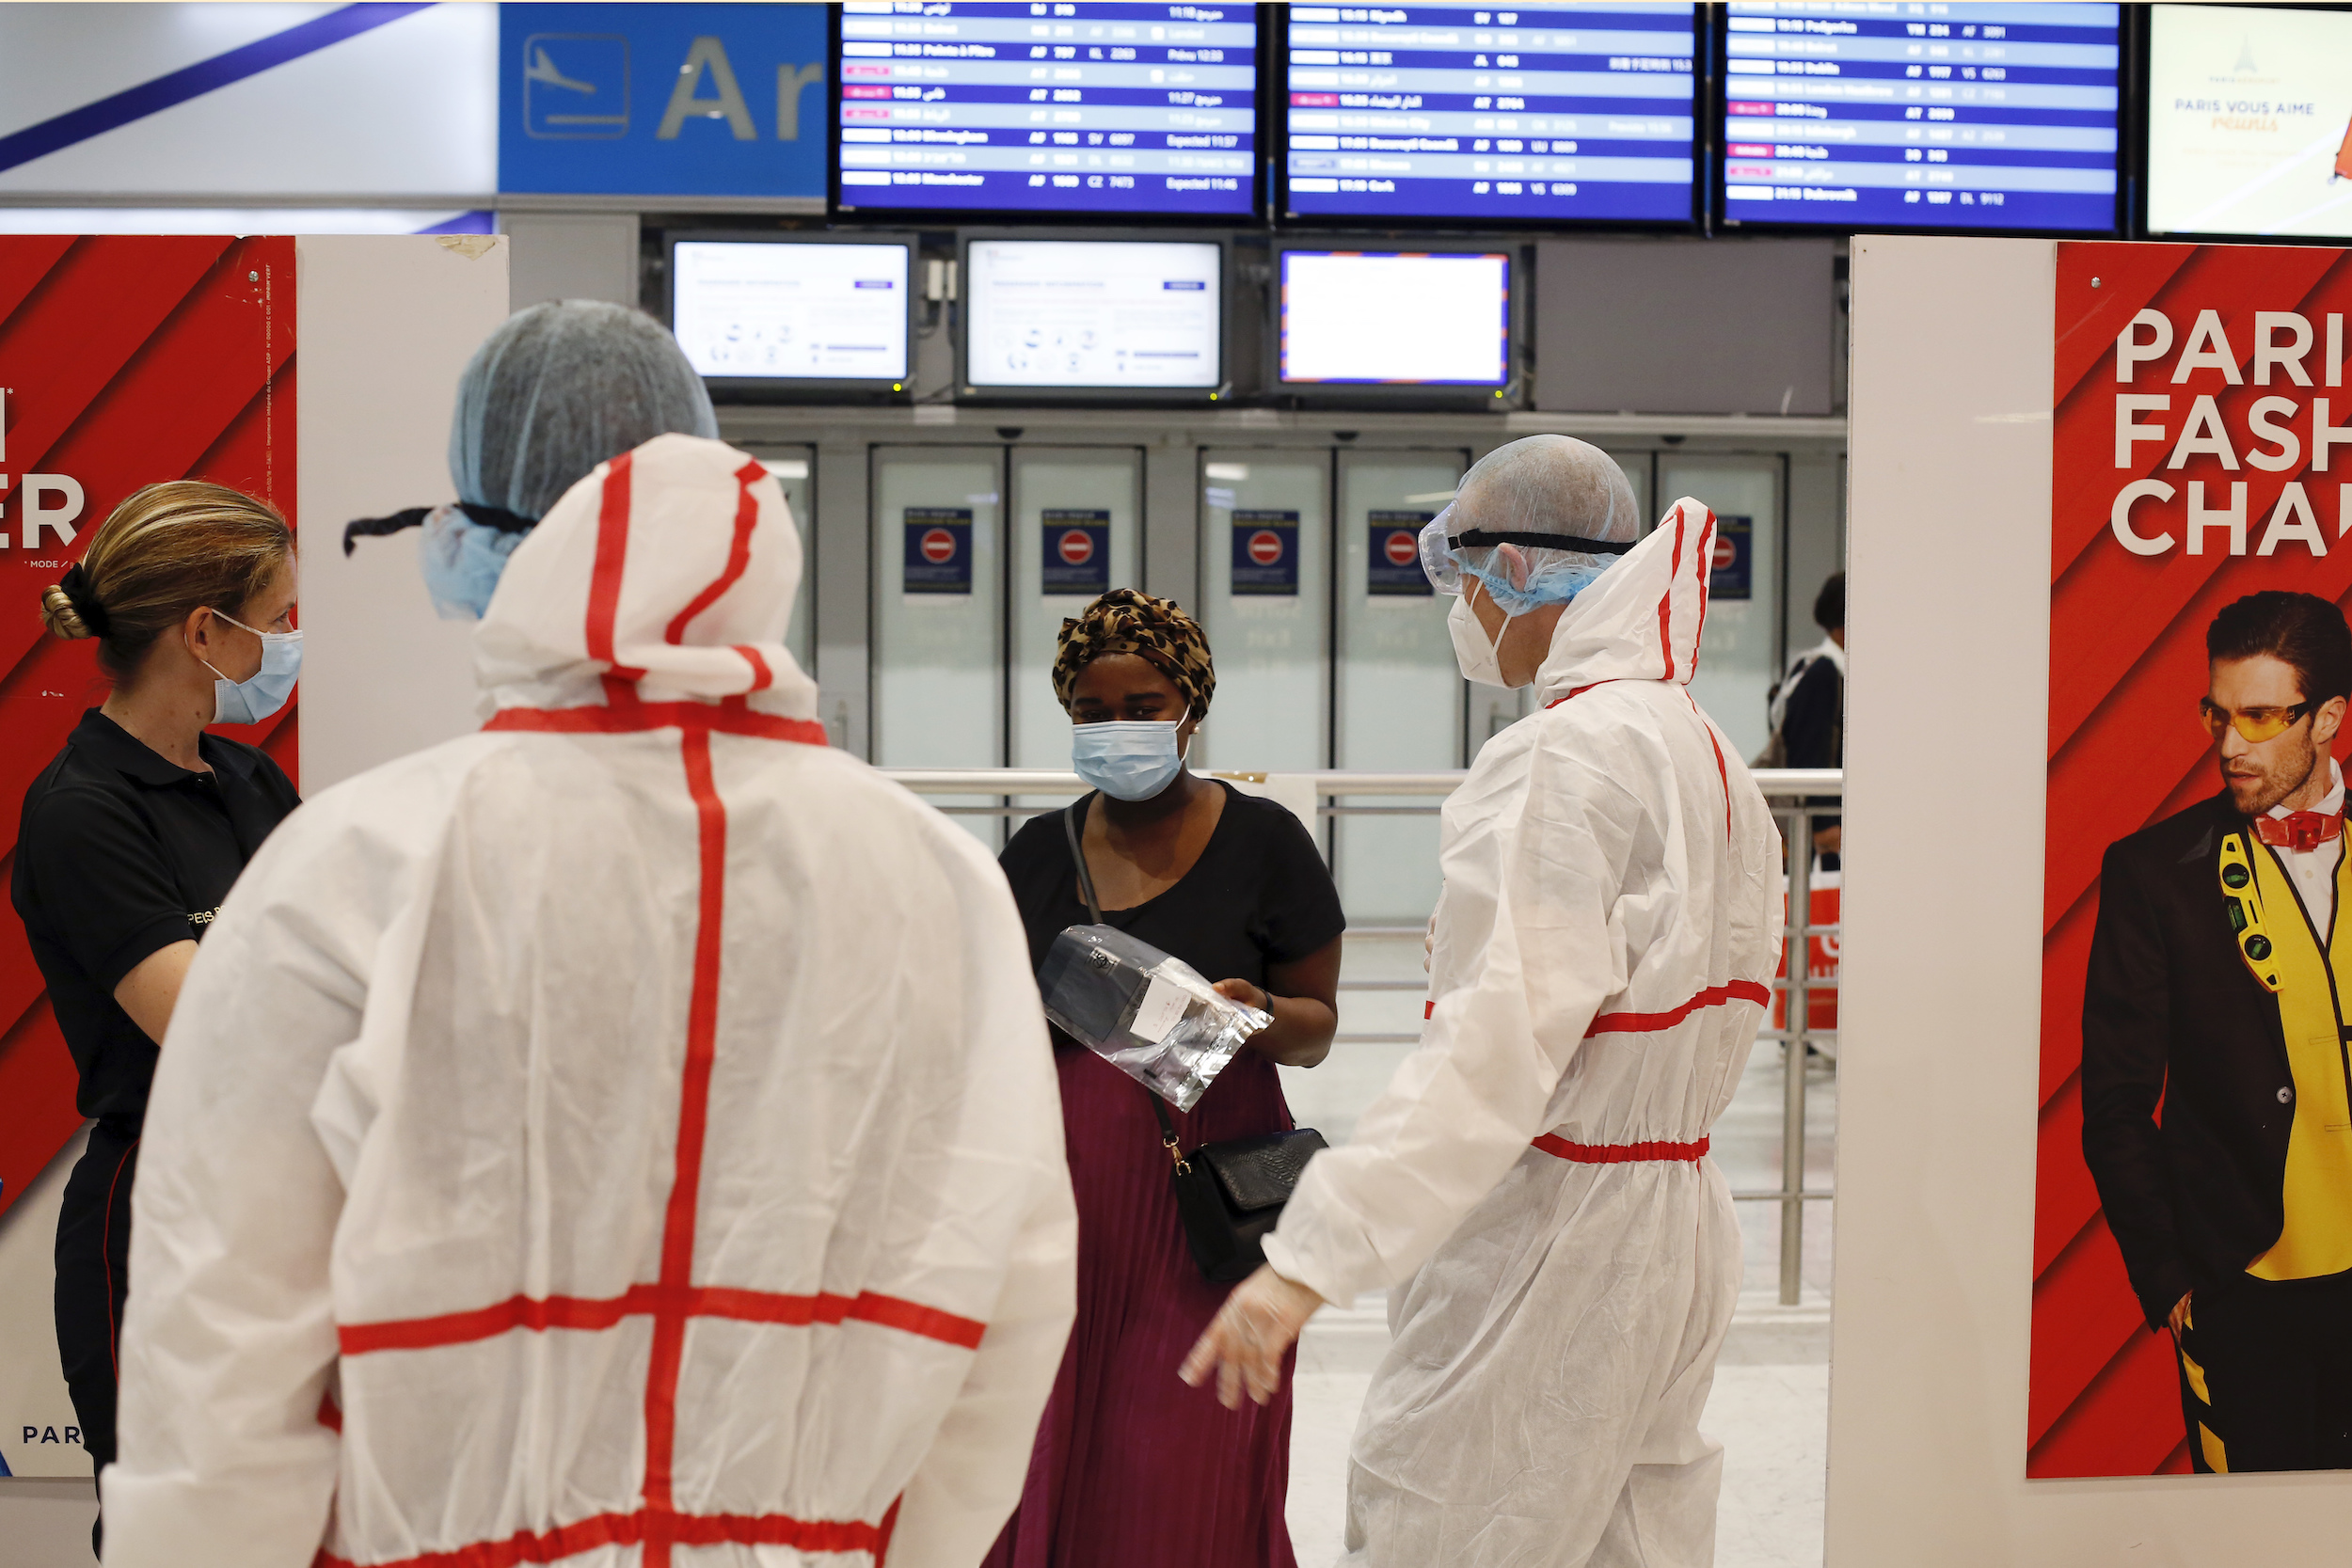 A passenger arrives to be tested with the COVID-19 test, at the Roissy Charles de Gaulle airport, outside Paris on Aug. 1, 2020.